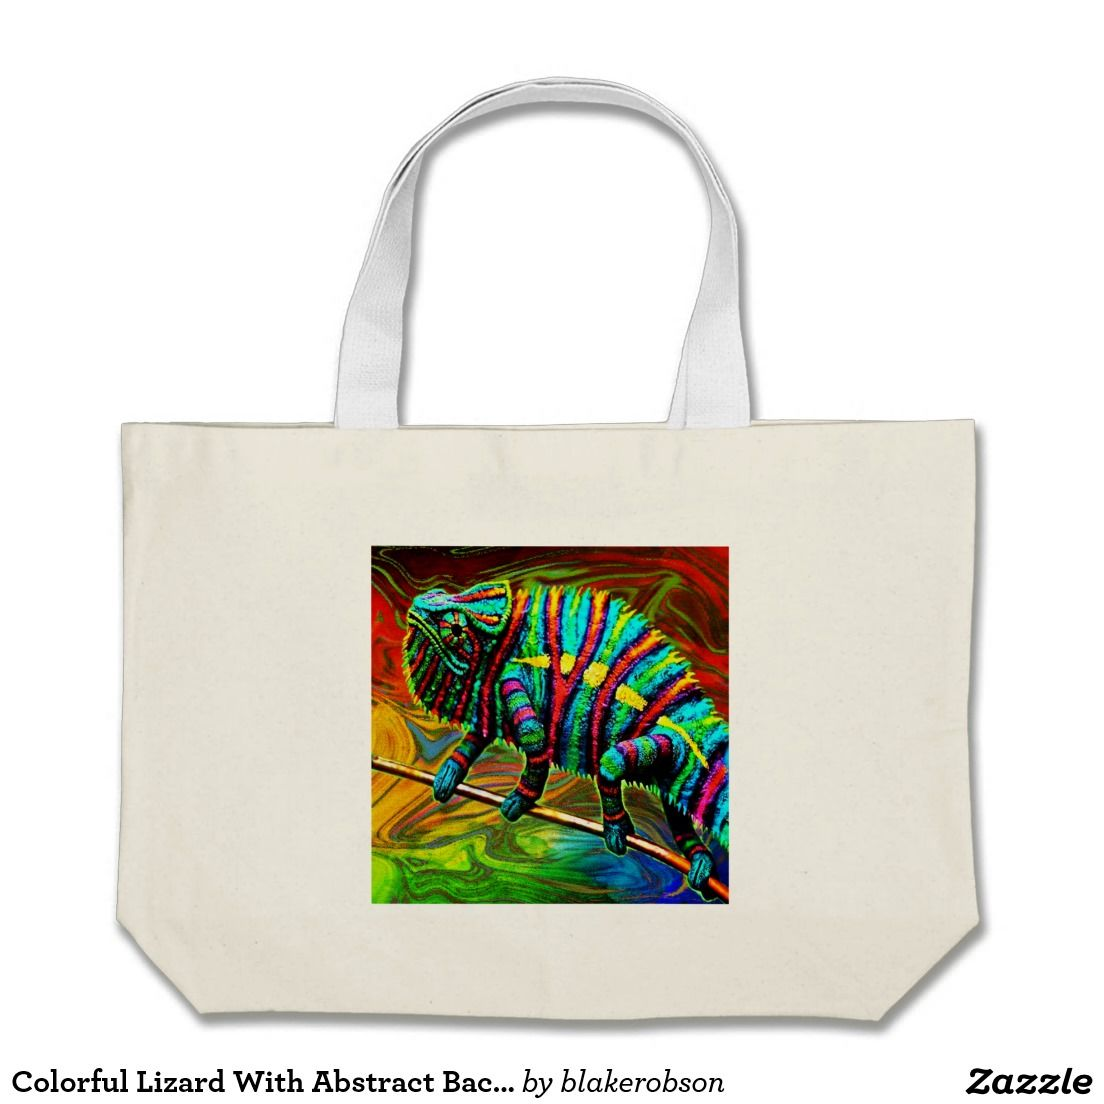 Colorful Lizard With Abstract Background Large Tote Bag | Colorful ...